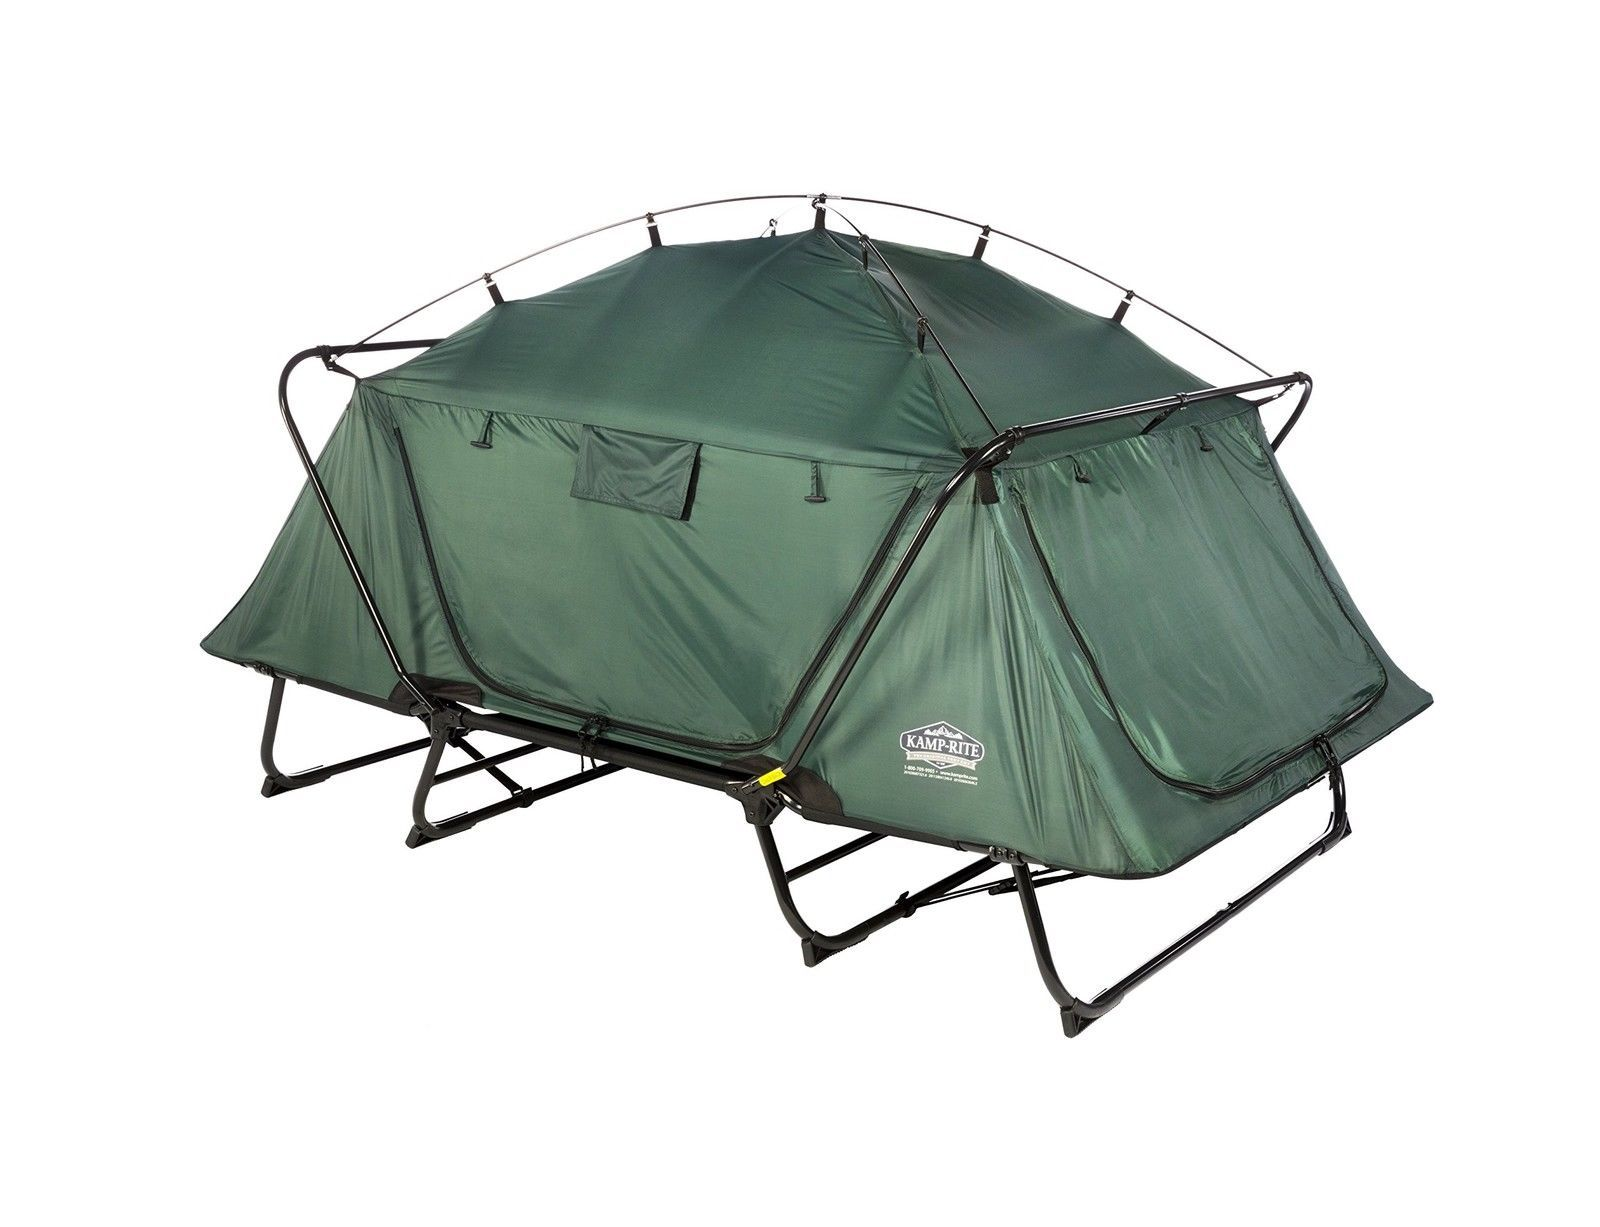 Cots 87099: New Kamp Rite Double Tent Cot Free Shipping New Free Shipp BUY IT NOW ONLY: $245.06